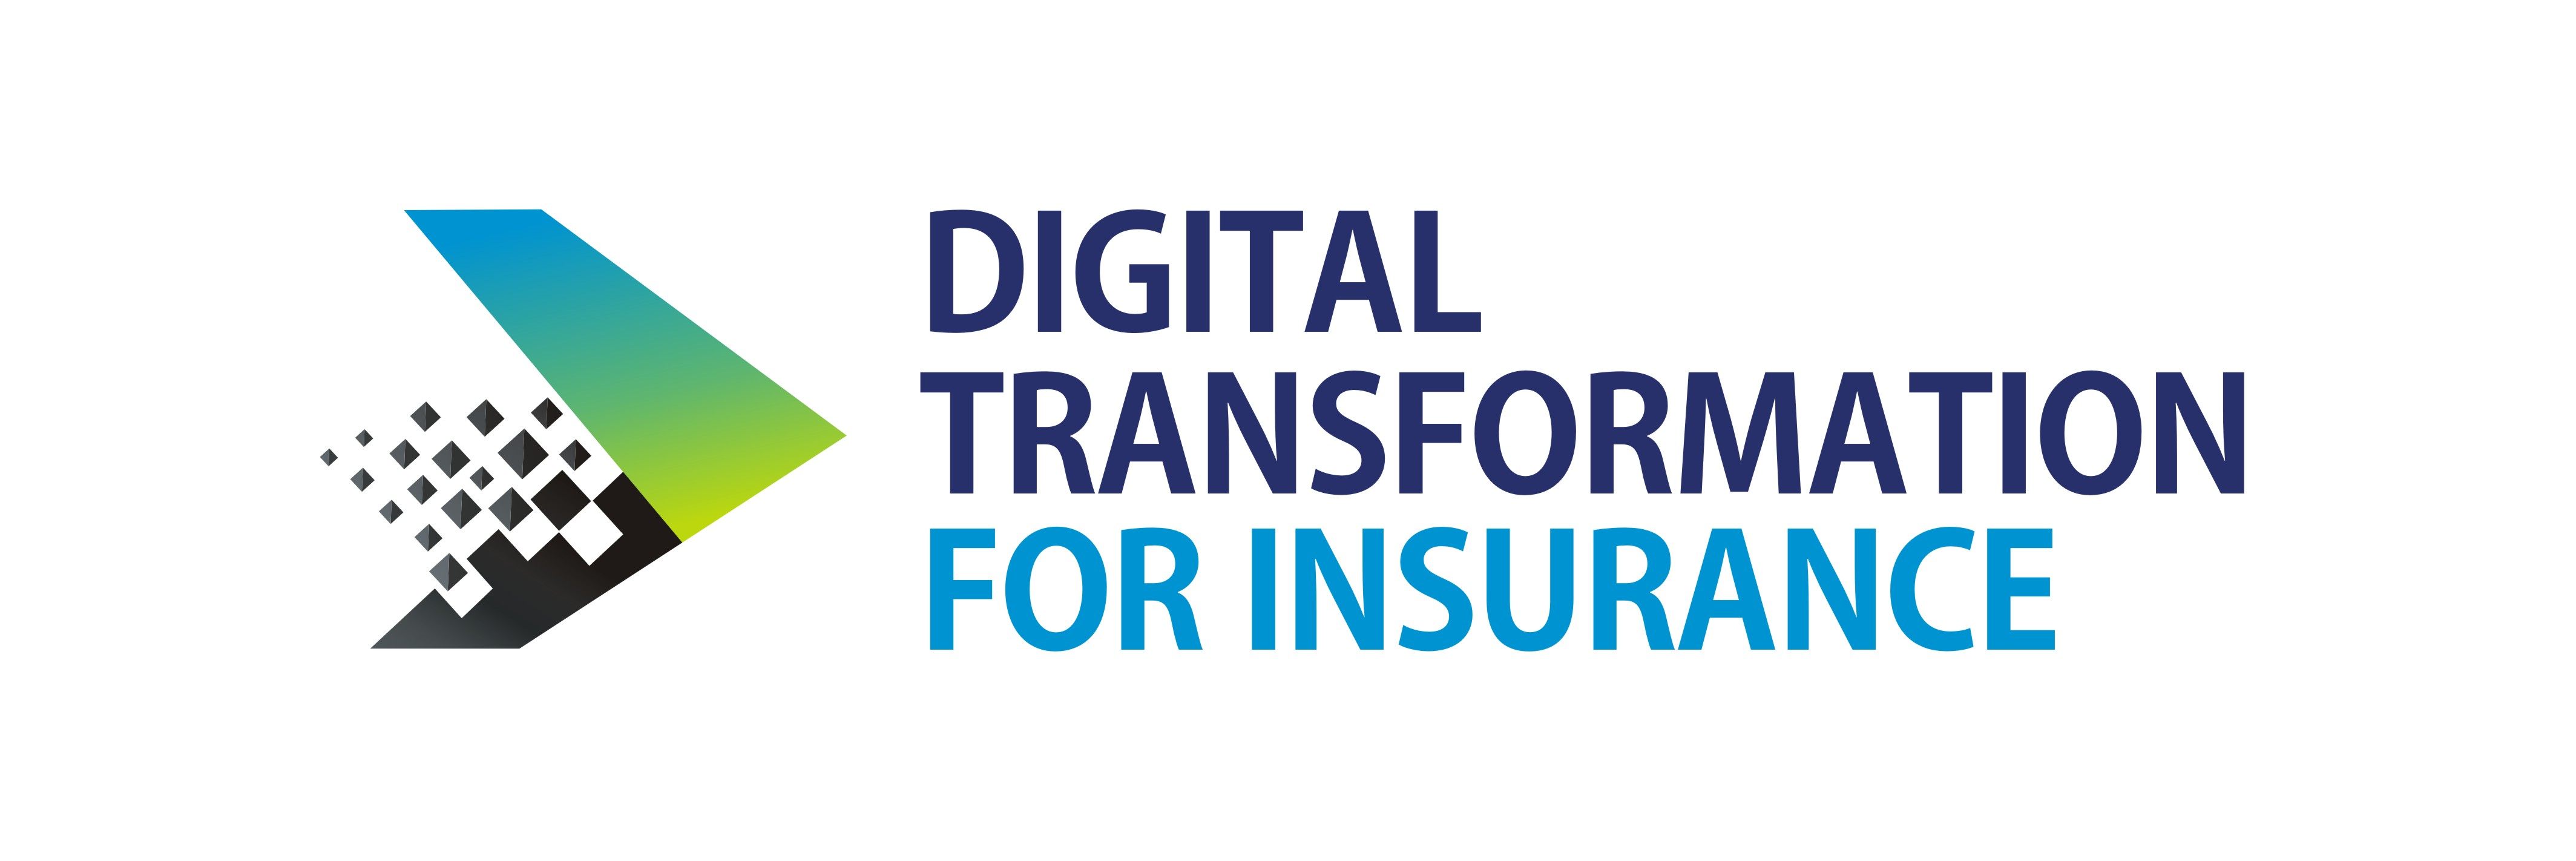 Digital Transformation for Insurance 2018